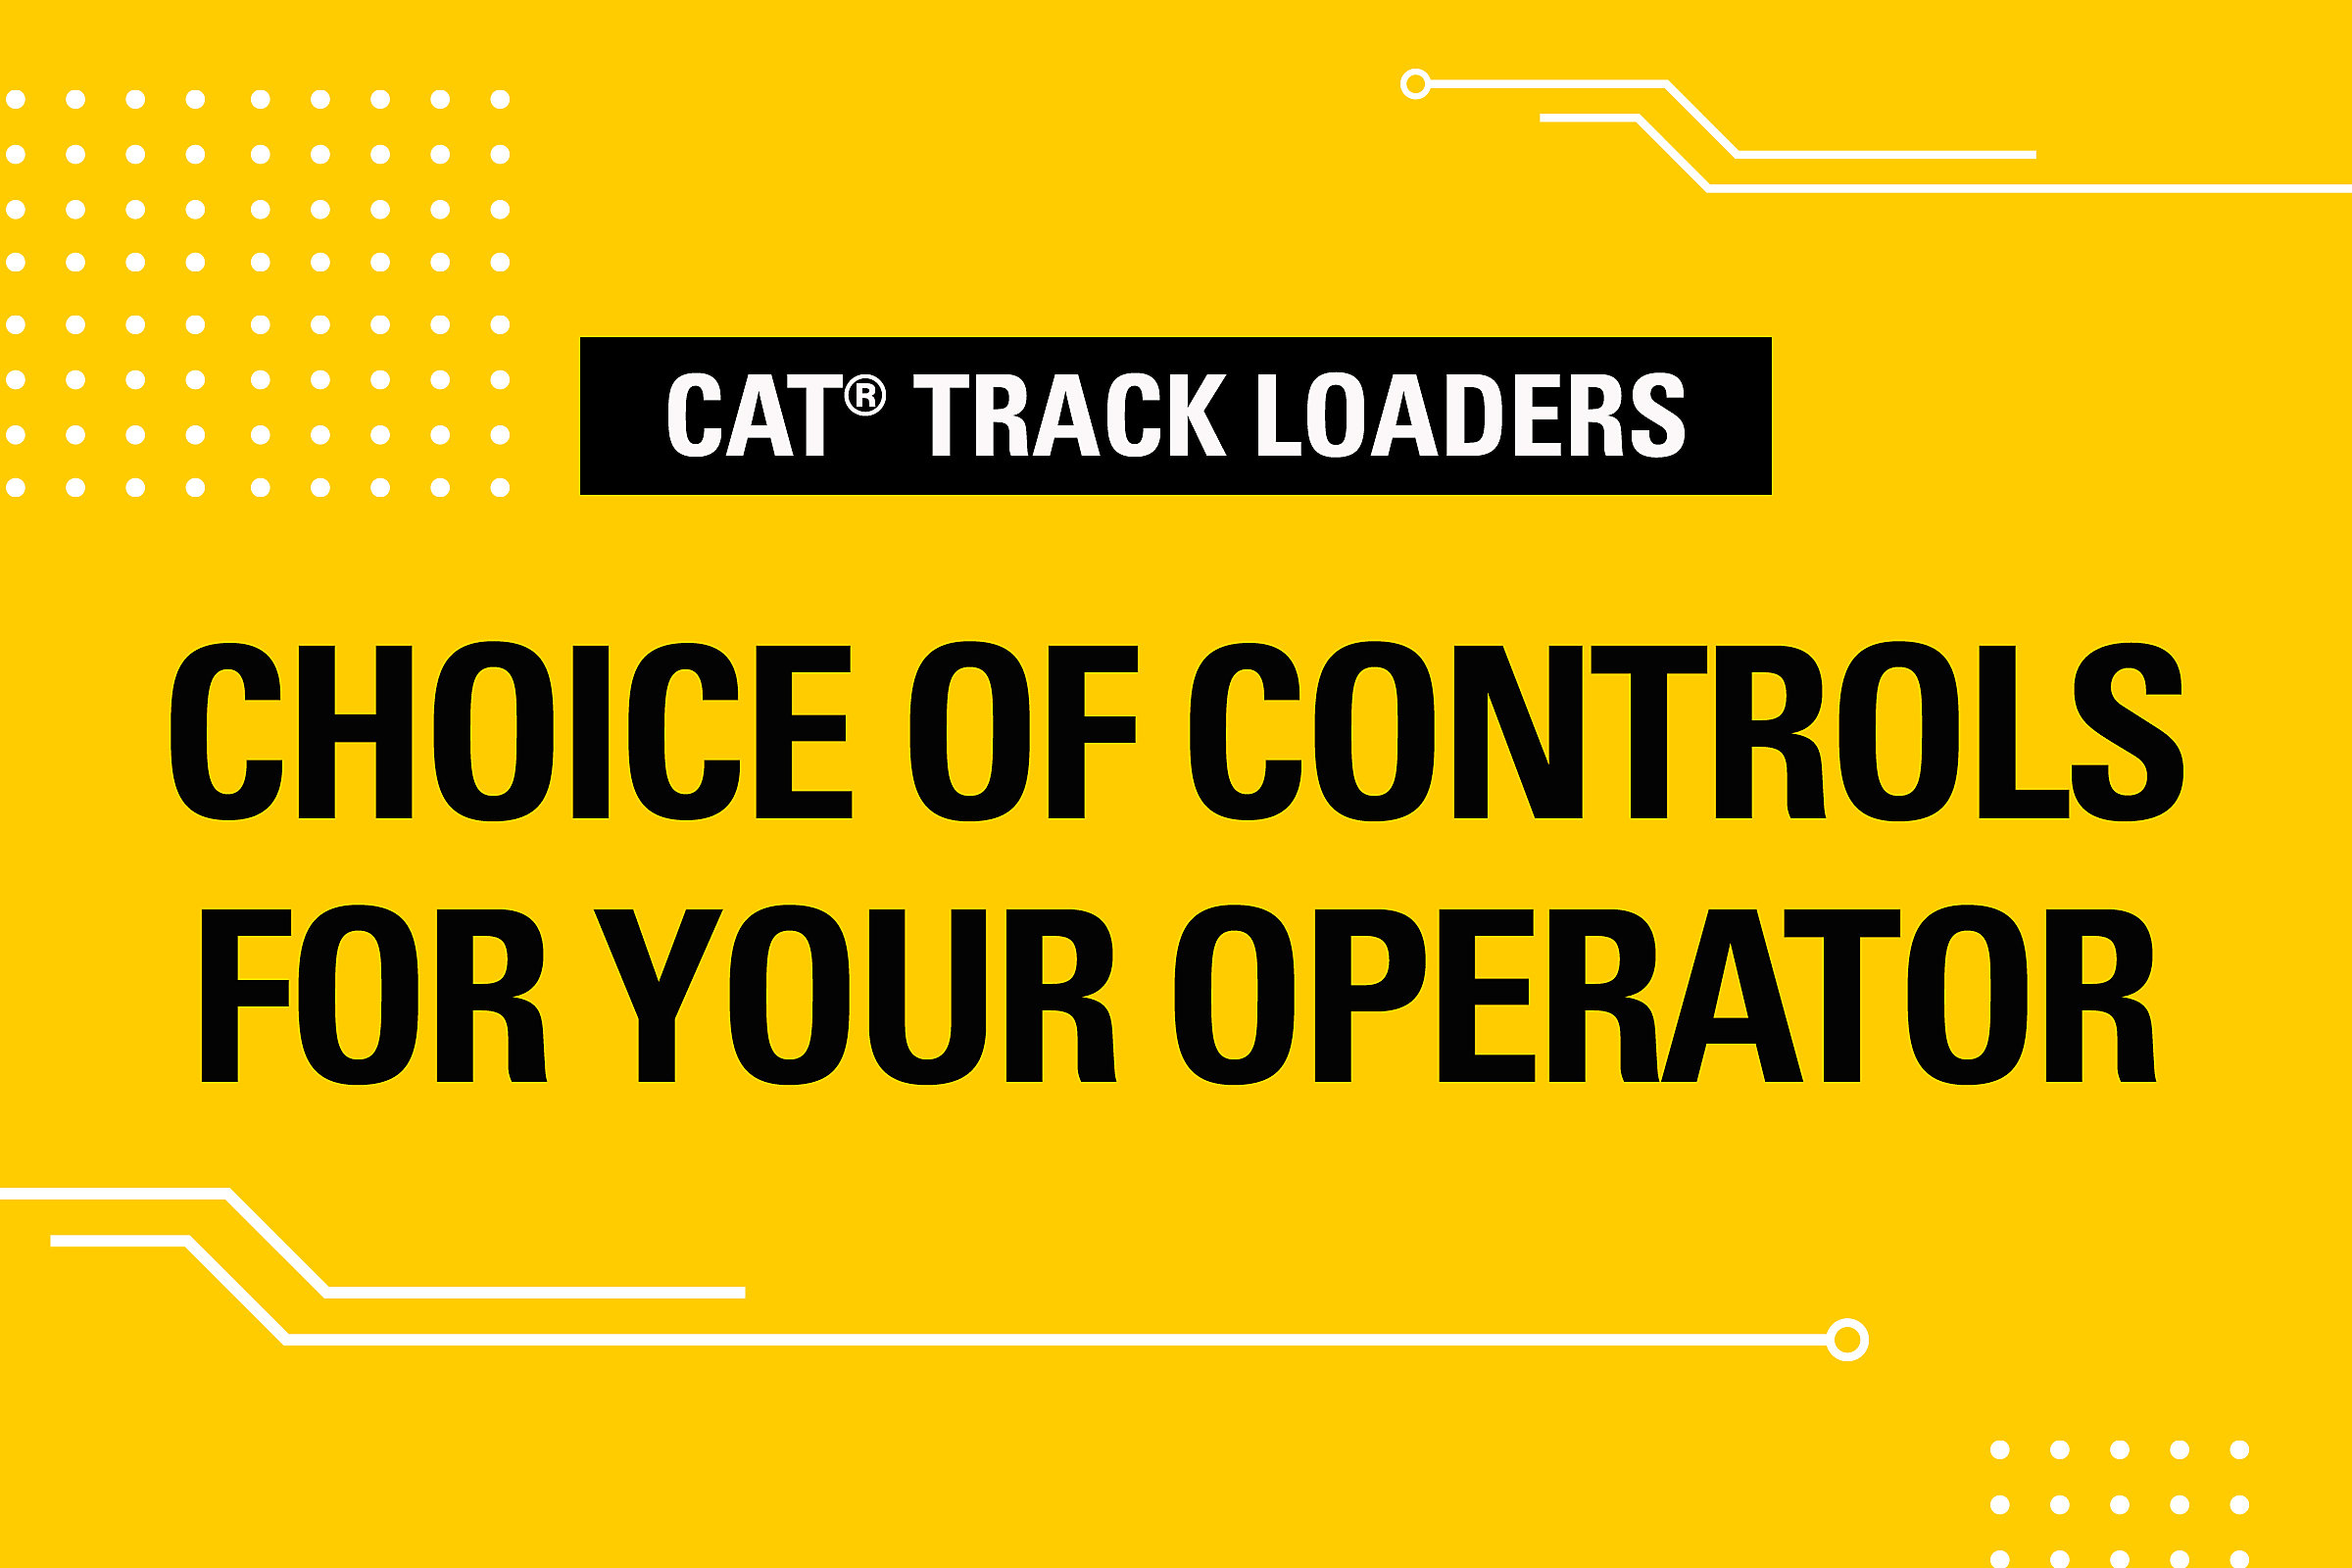 Choice of Controls for Your Operator